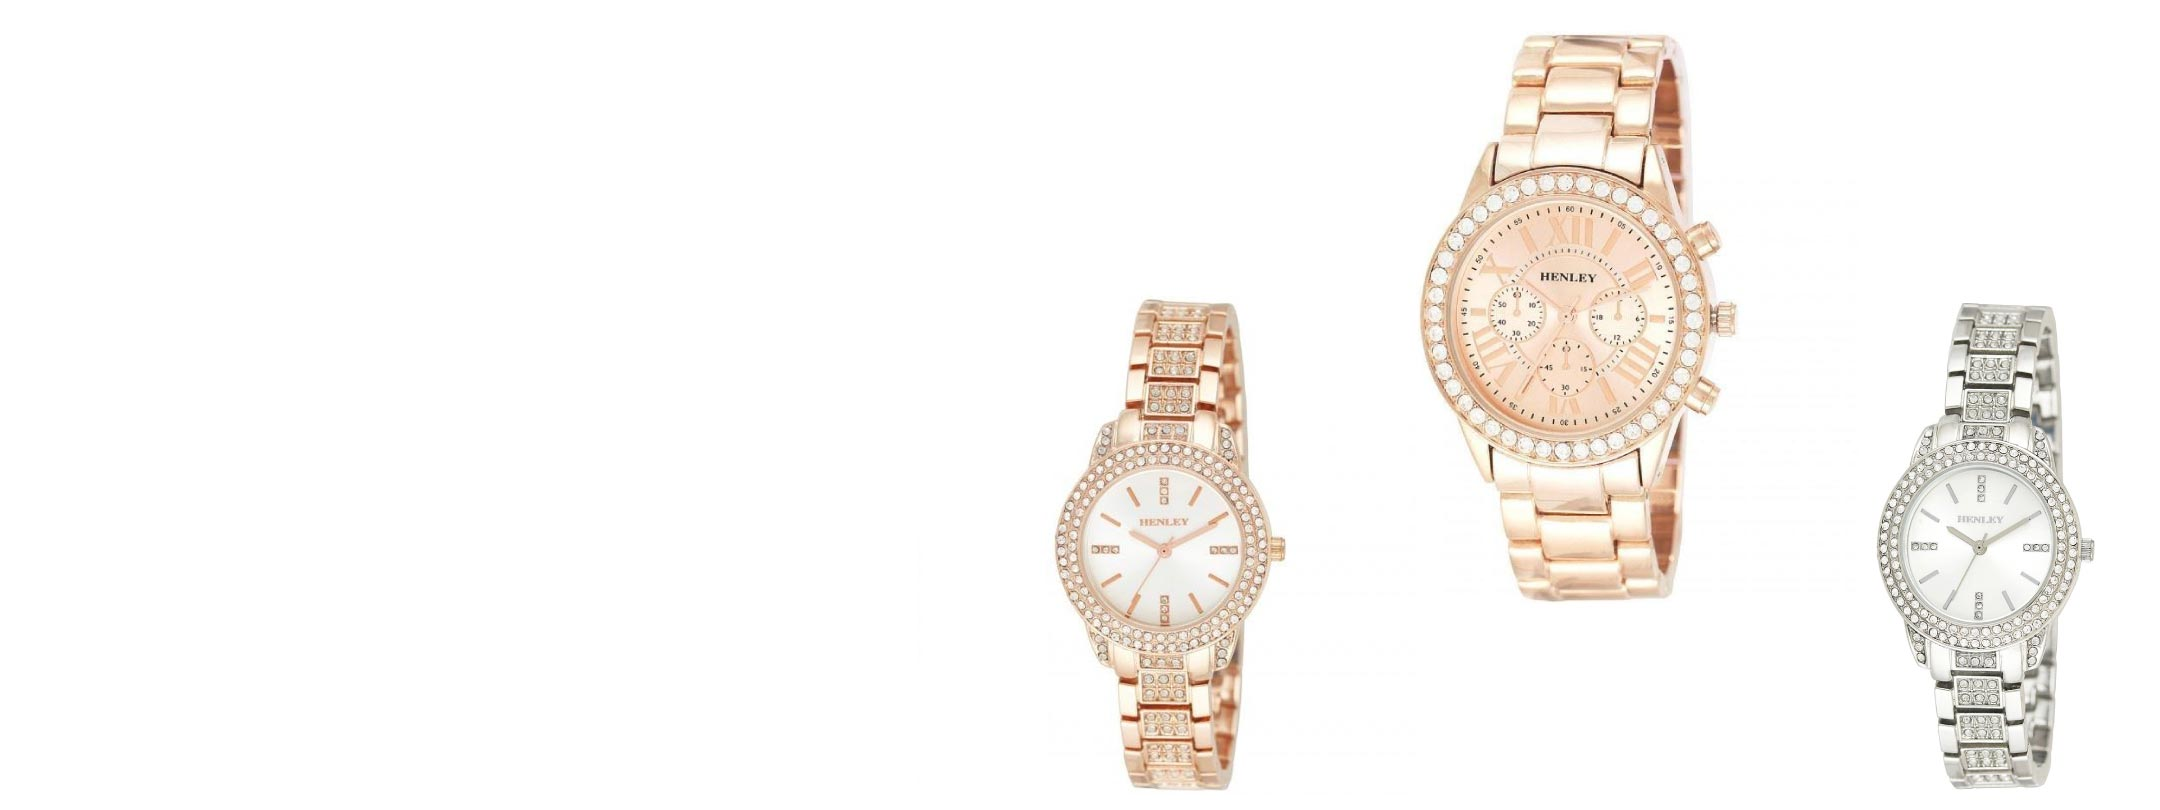 Large Variety for Women's Watches